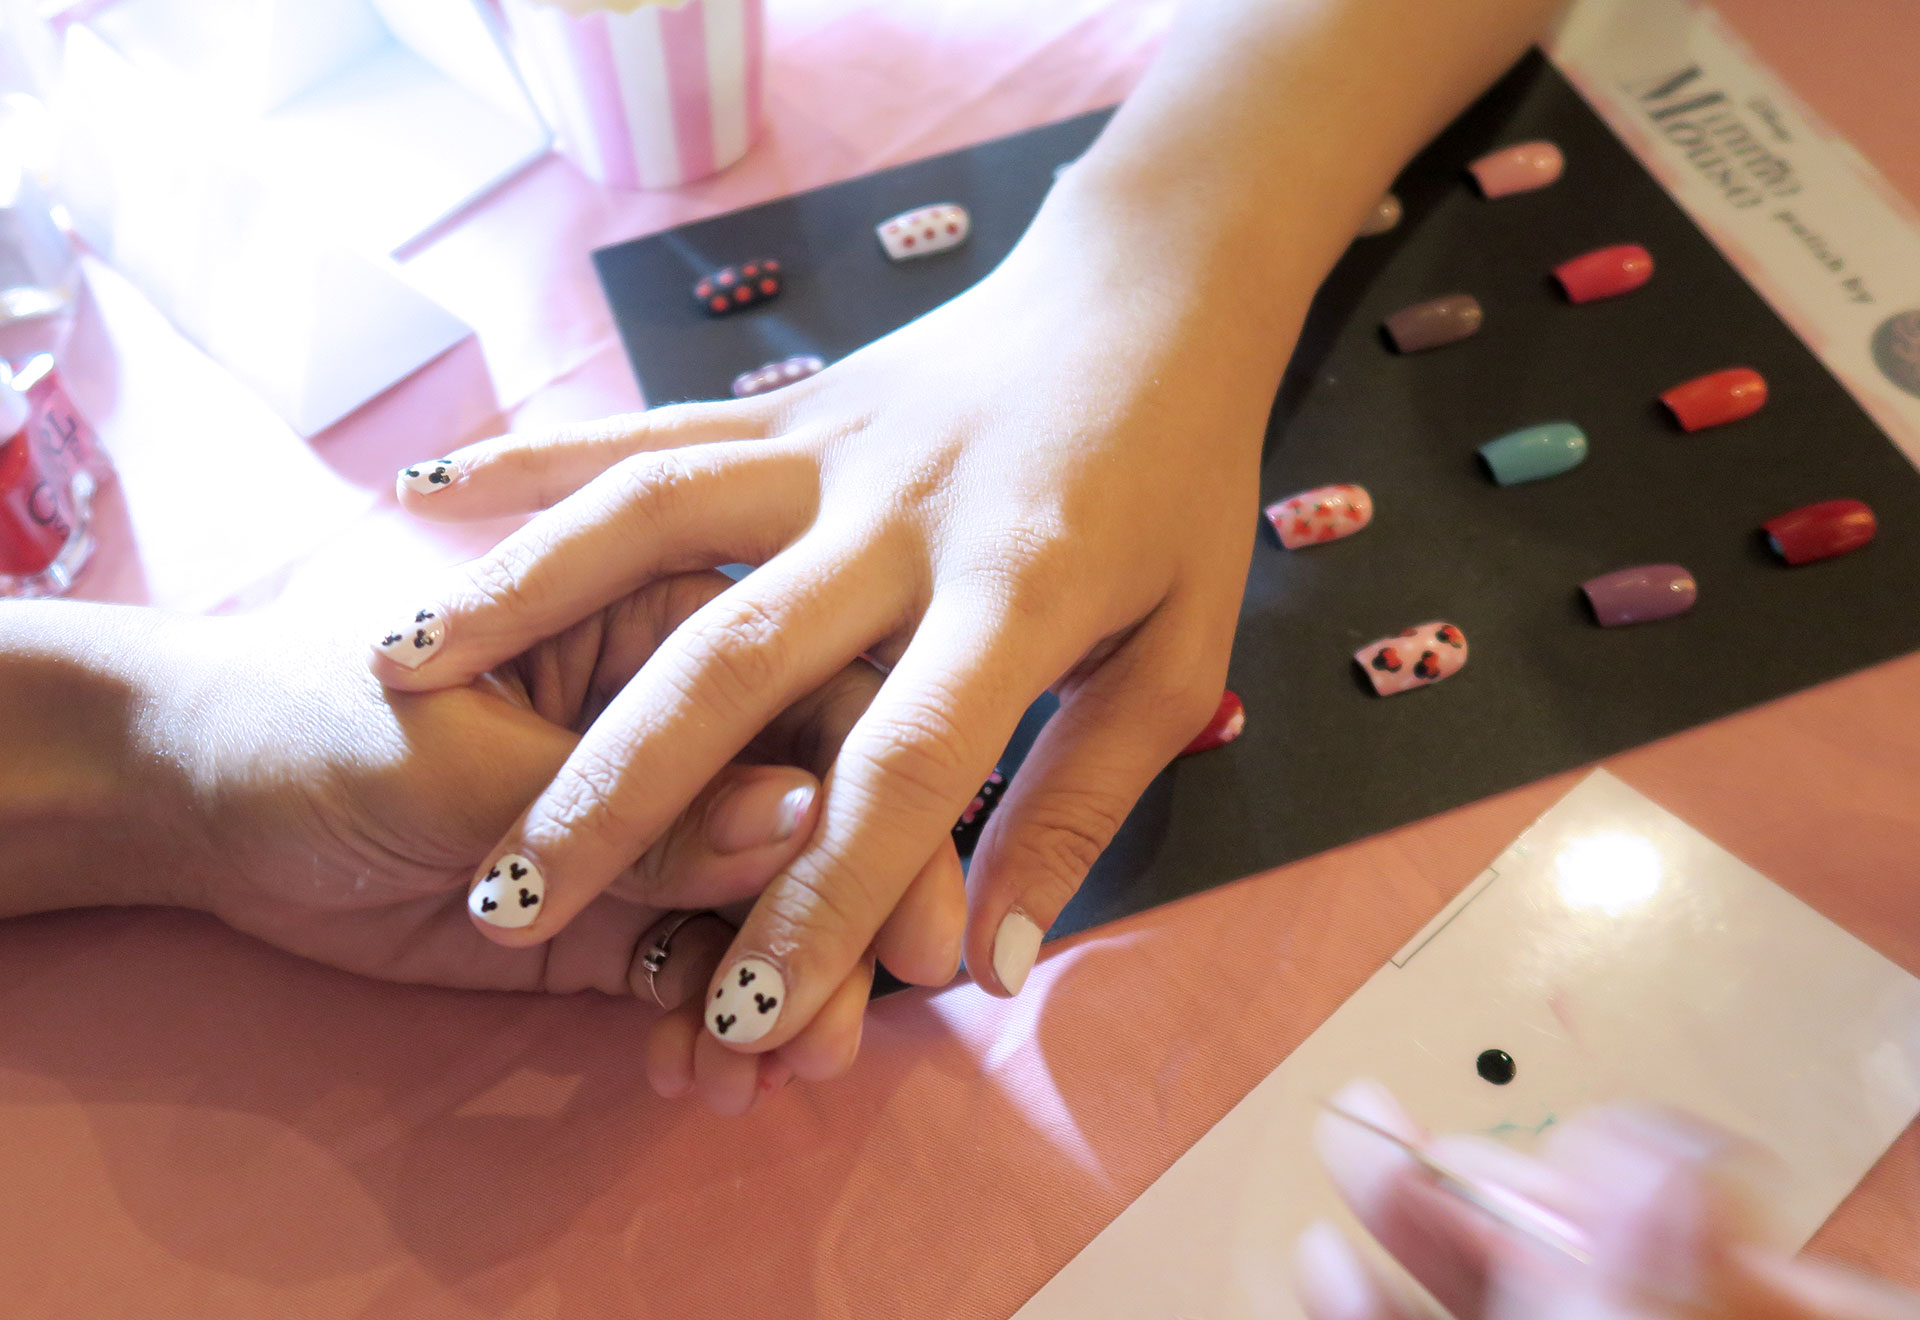 14 Girlstuff Minnie Mouse Nail Lacquers Collection Review Swatches Photos - Gen-zel She Sings Beauty